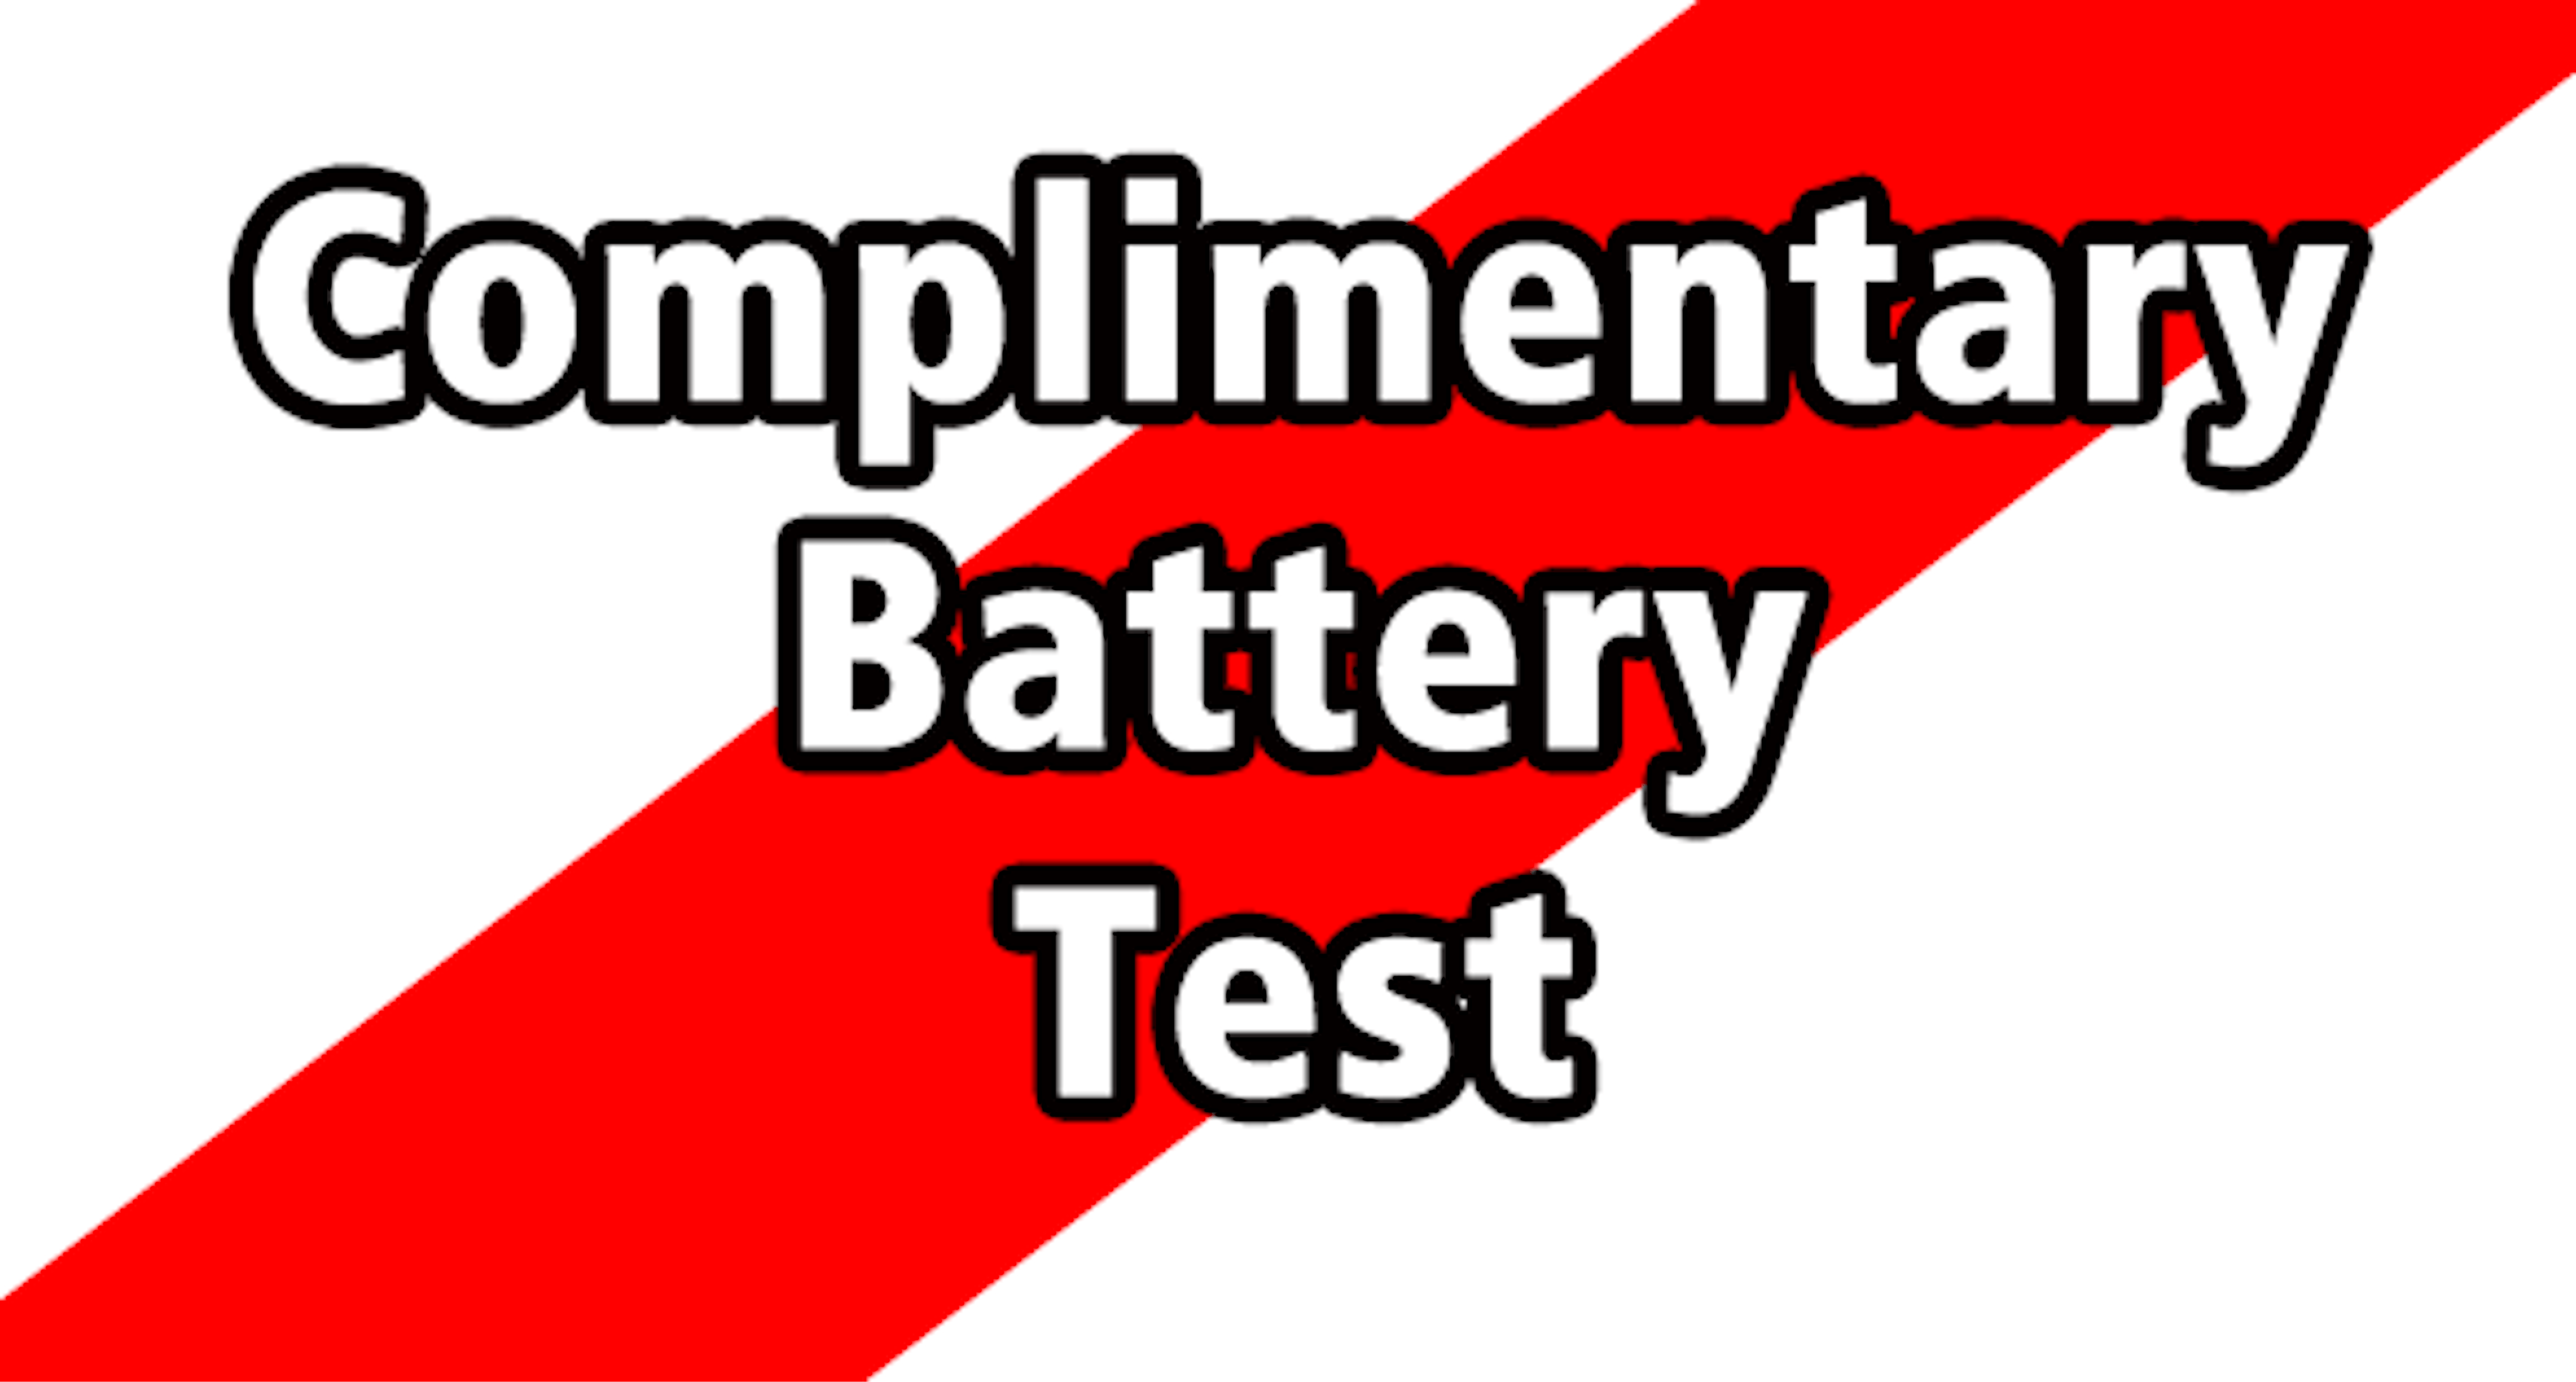 Complimentary Battery Check Service specials Diehl Automotive Pennsylvania Ohio Pittsburgh Butler Moon Robinson vehicle sales service parts accessories Chrysler jeep dodge ram chevrolet buick cadillac toyota volkswagen vw mitsubishi